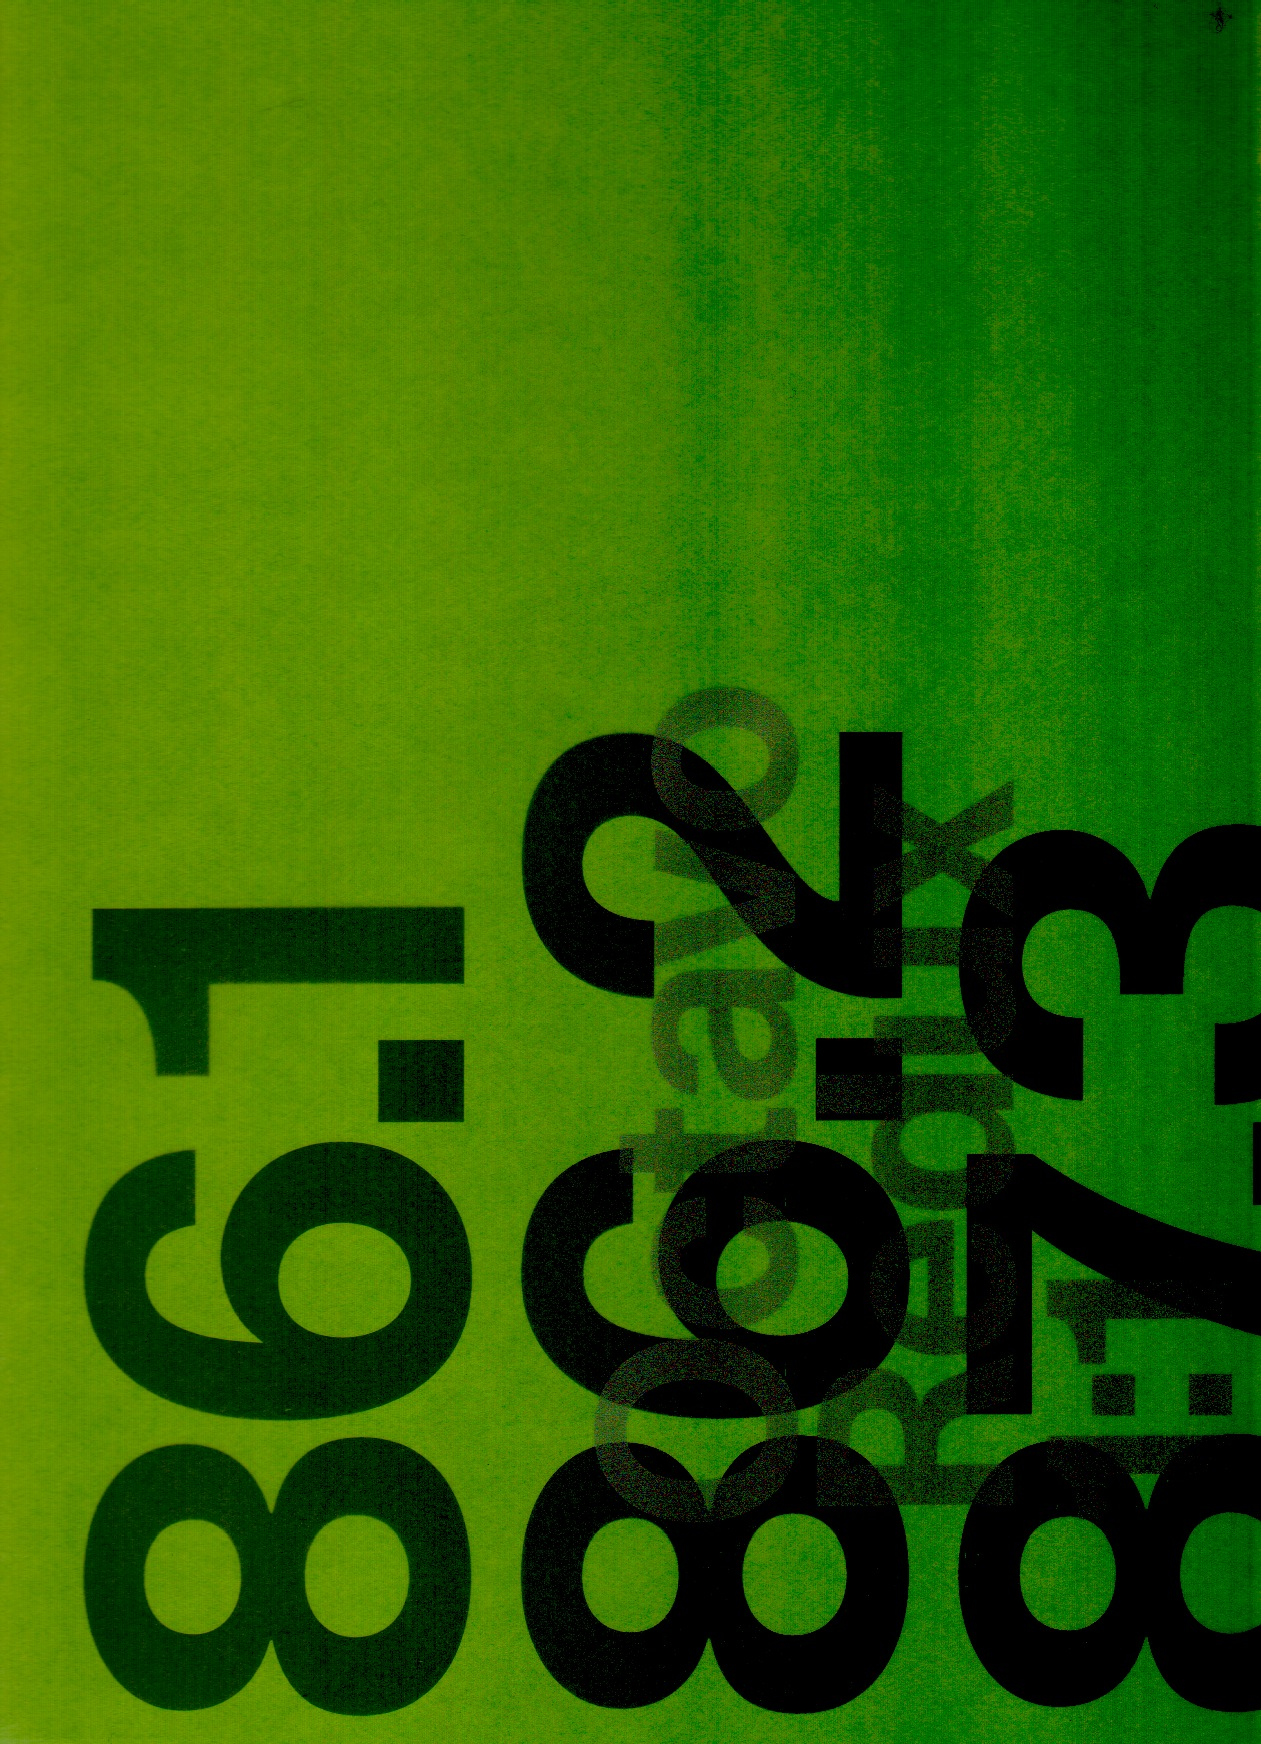 MUIR, Hamish; HOLT, Mark - Octavo Redux 1:1 